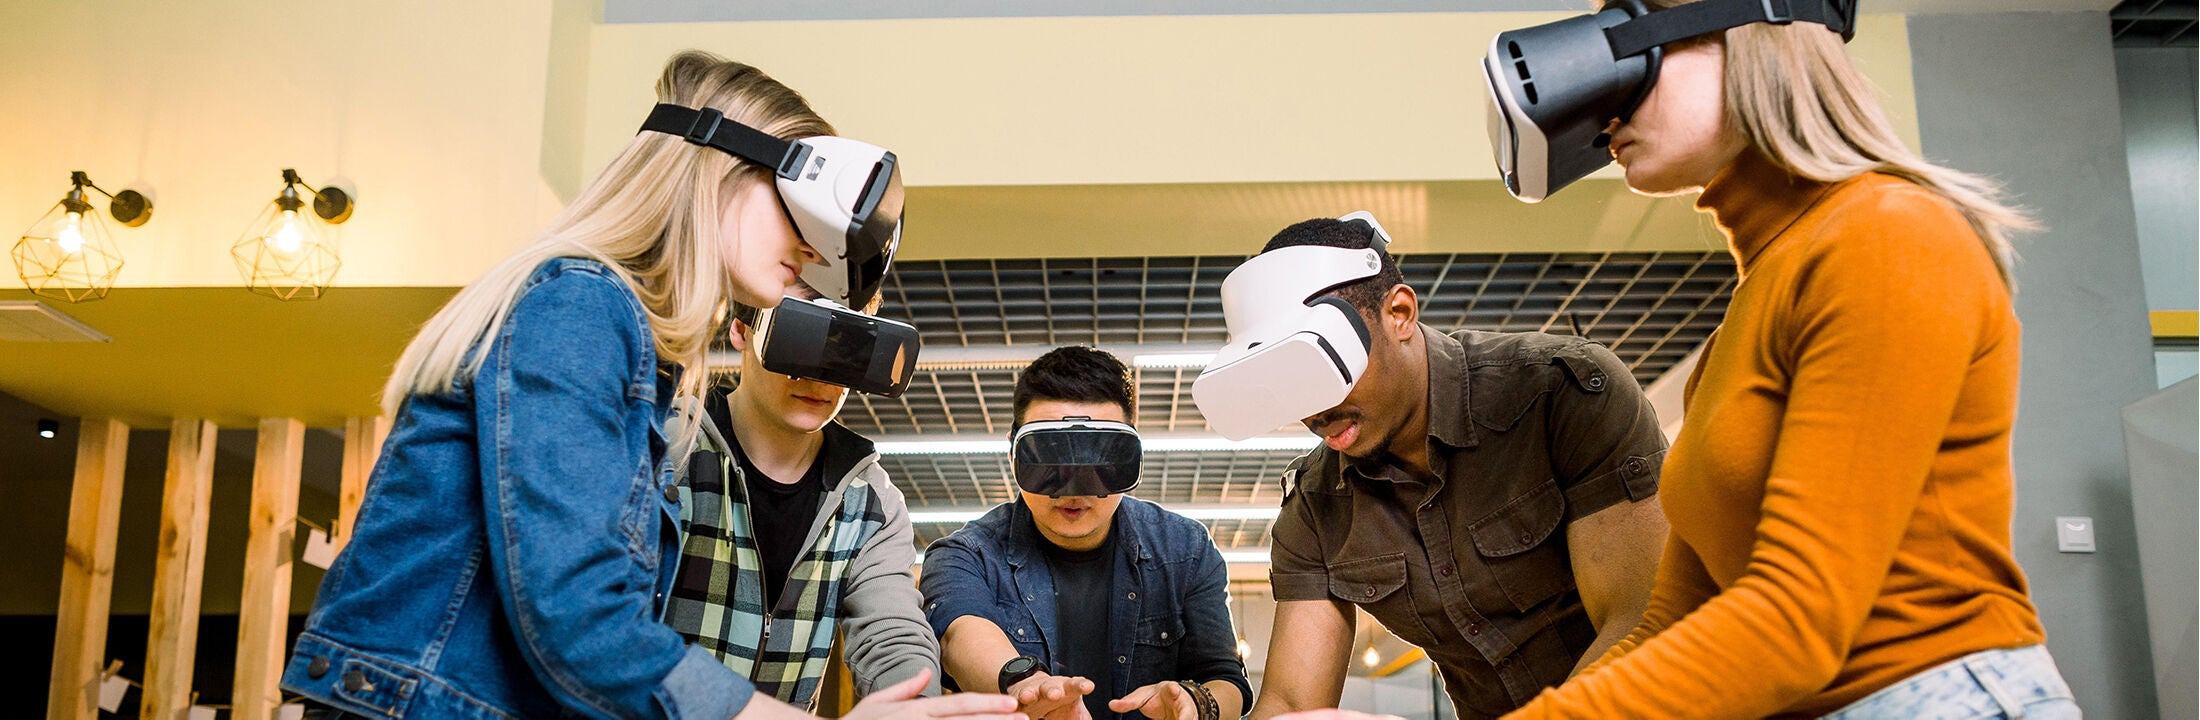 Students with VR glasses